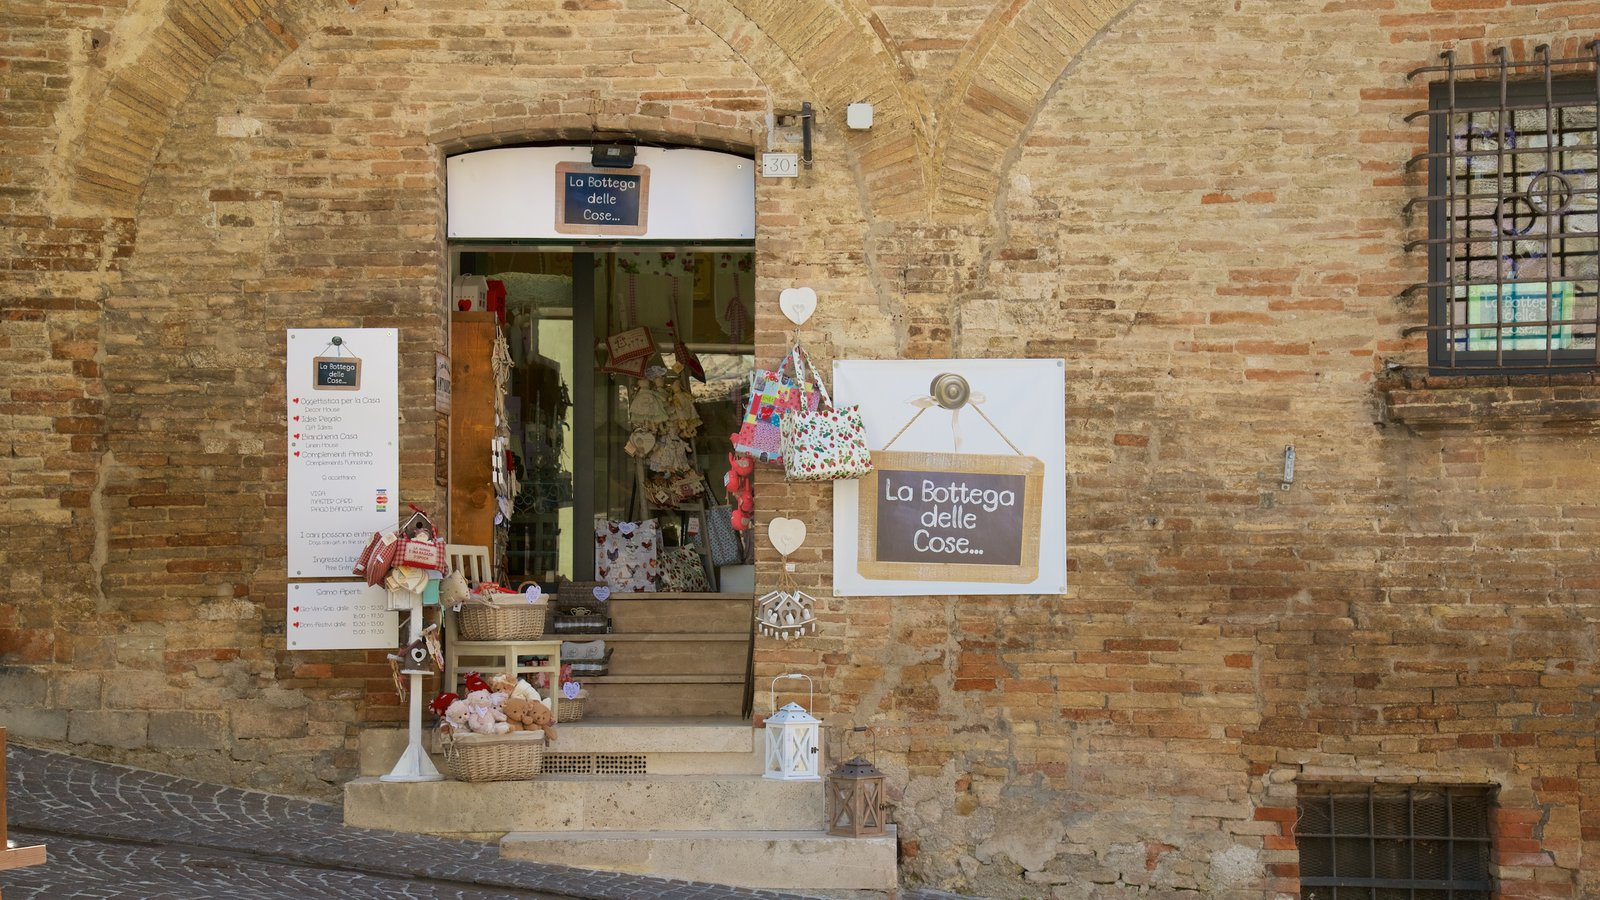 Montefalco which includes signage